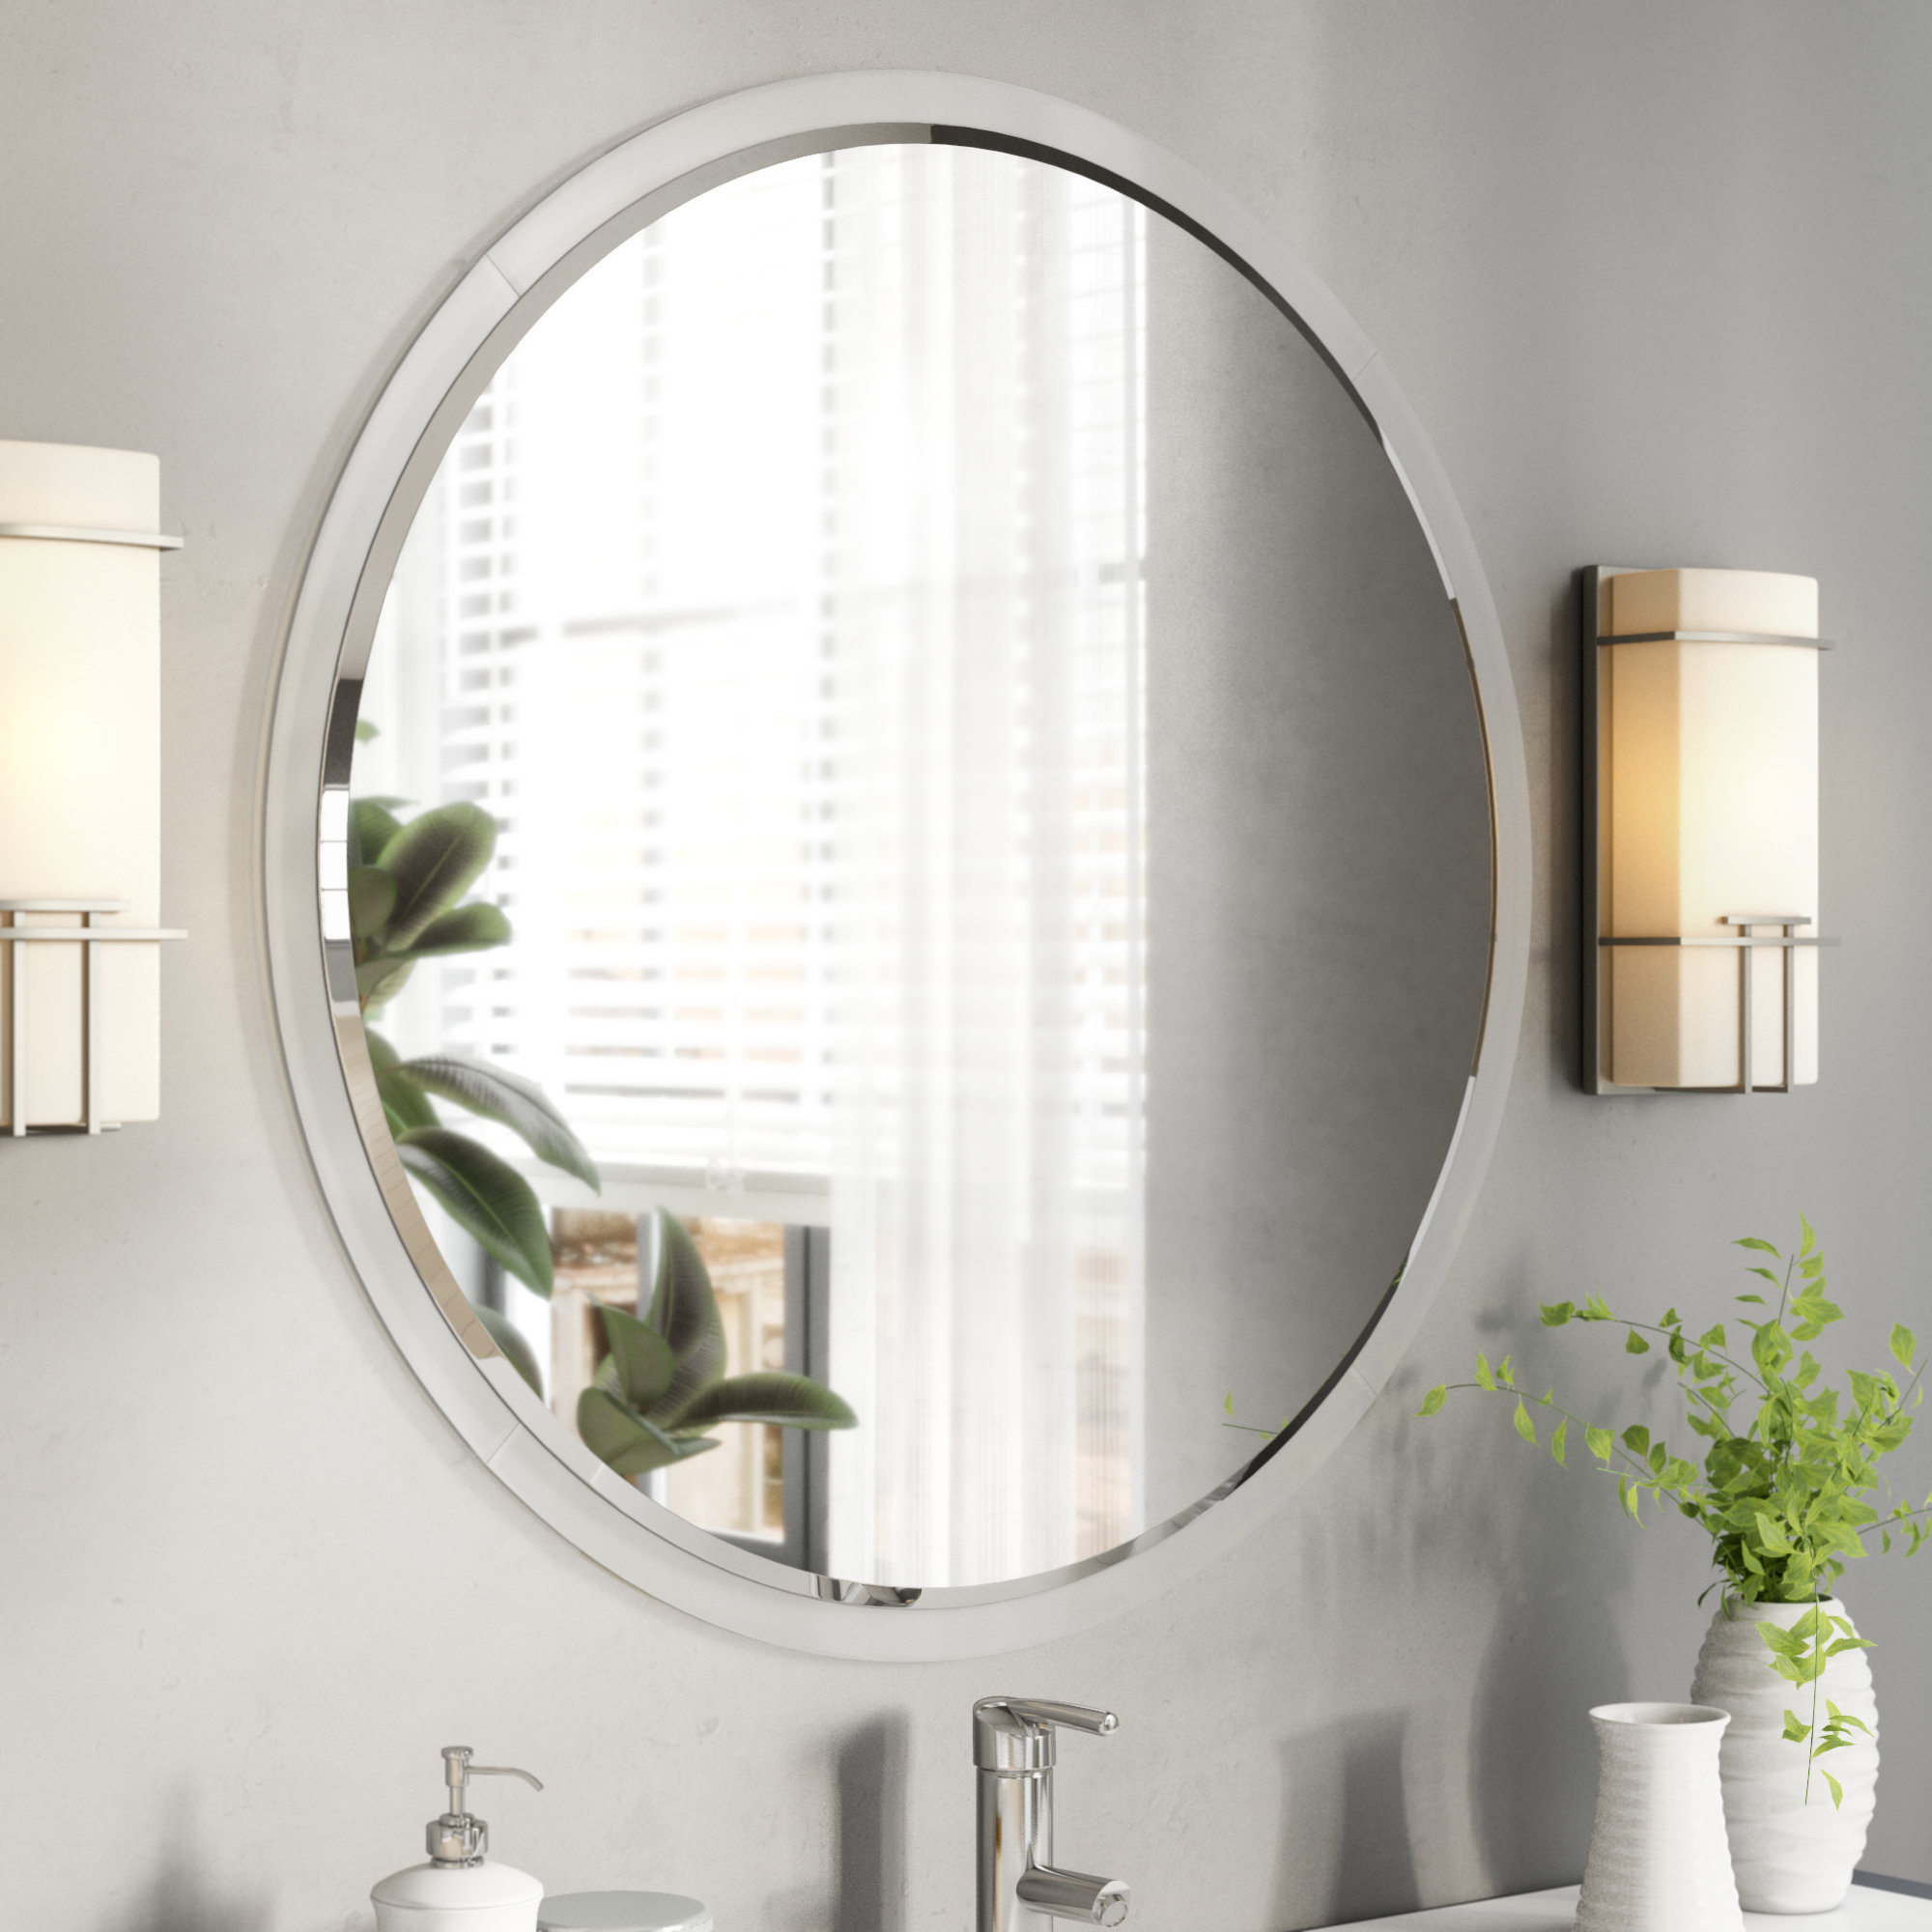 Fashionable Enciso Wall Bathroom/vanity Mirror Throughout Lidya Frameless Beveled Wall Mirrors (View 5 of 20)